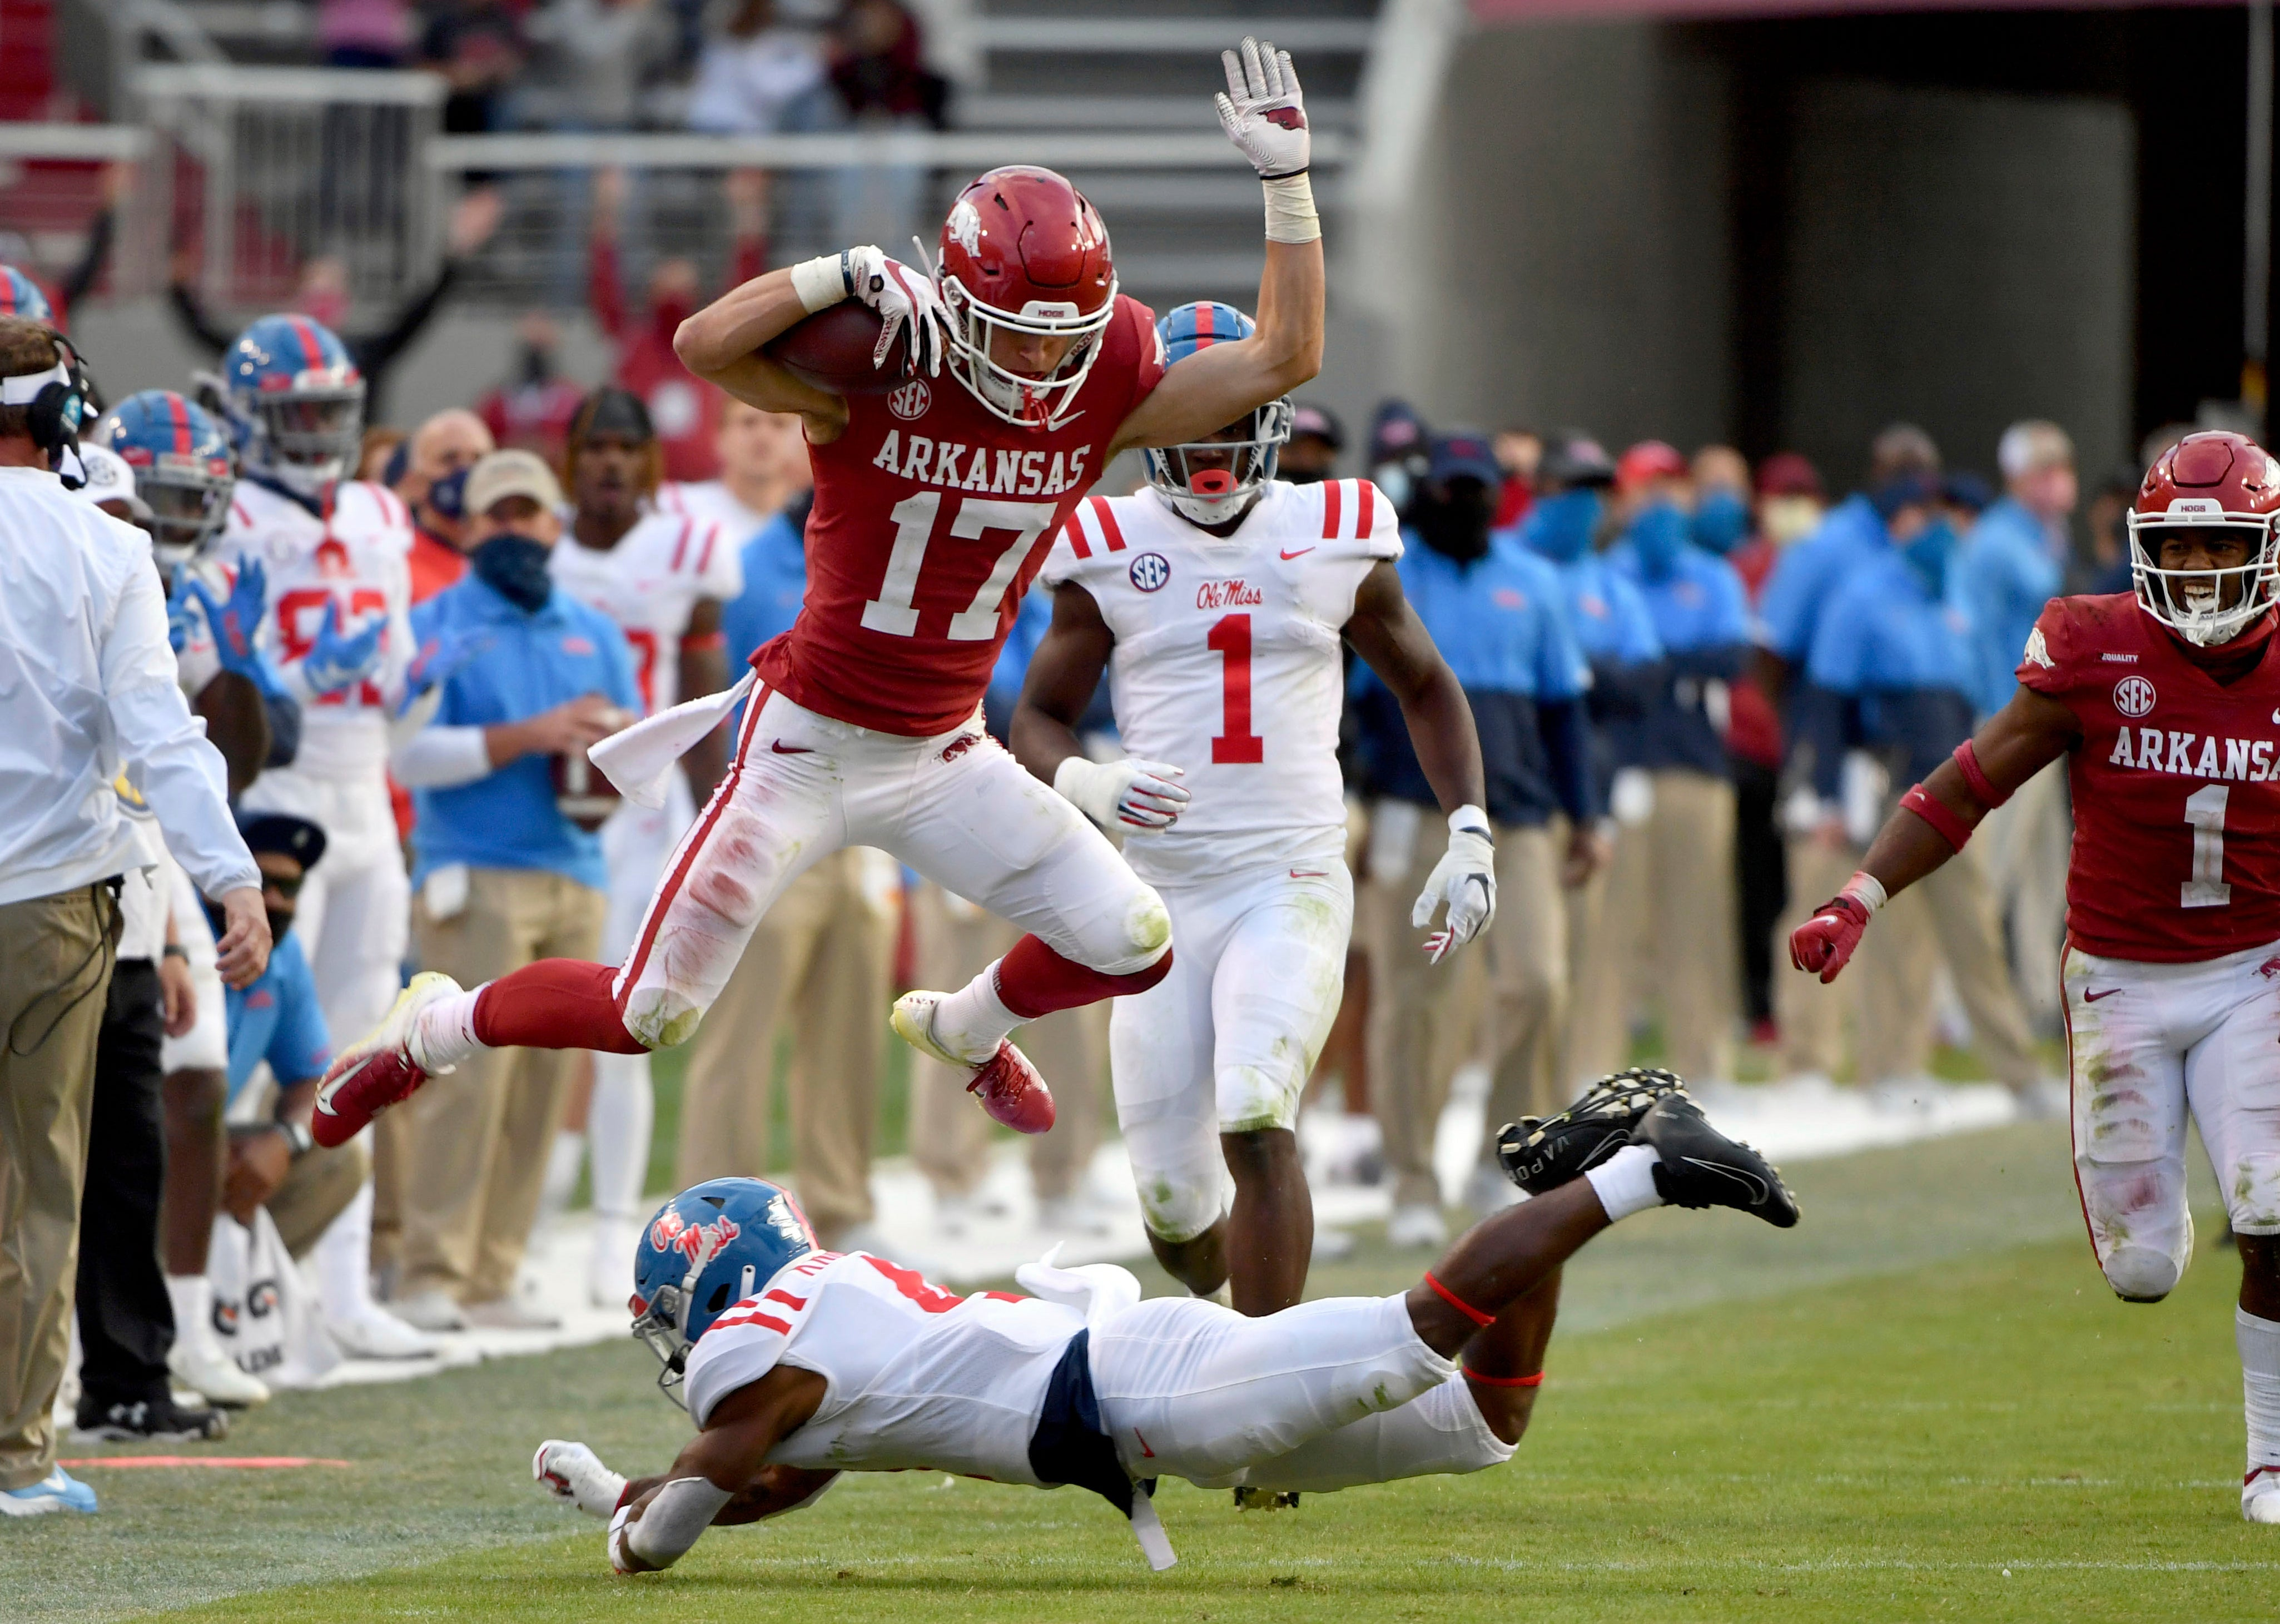 Arkansas Forces Seven Turnovers Beats Ole Miss 33 21 Giveaways Ole Miss Ap Mississippi Fayetteville The Independent